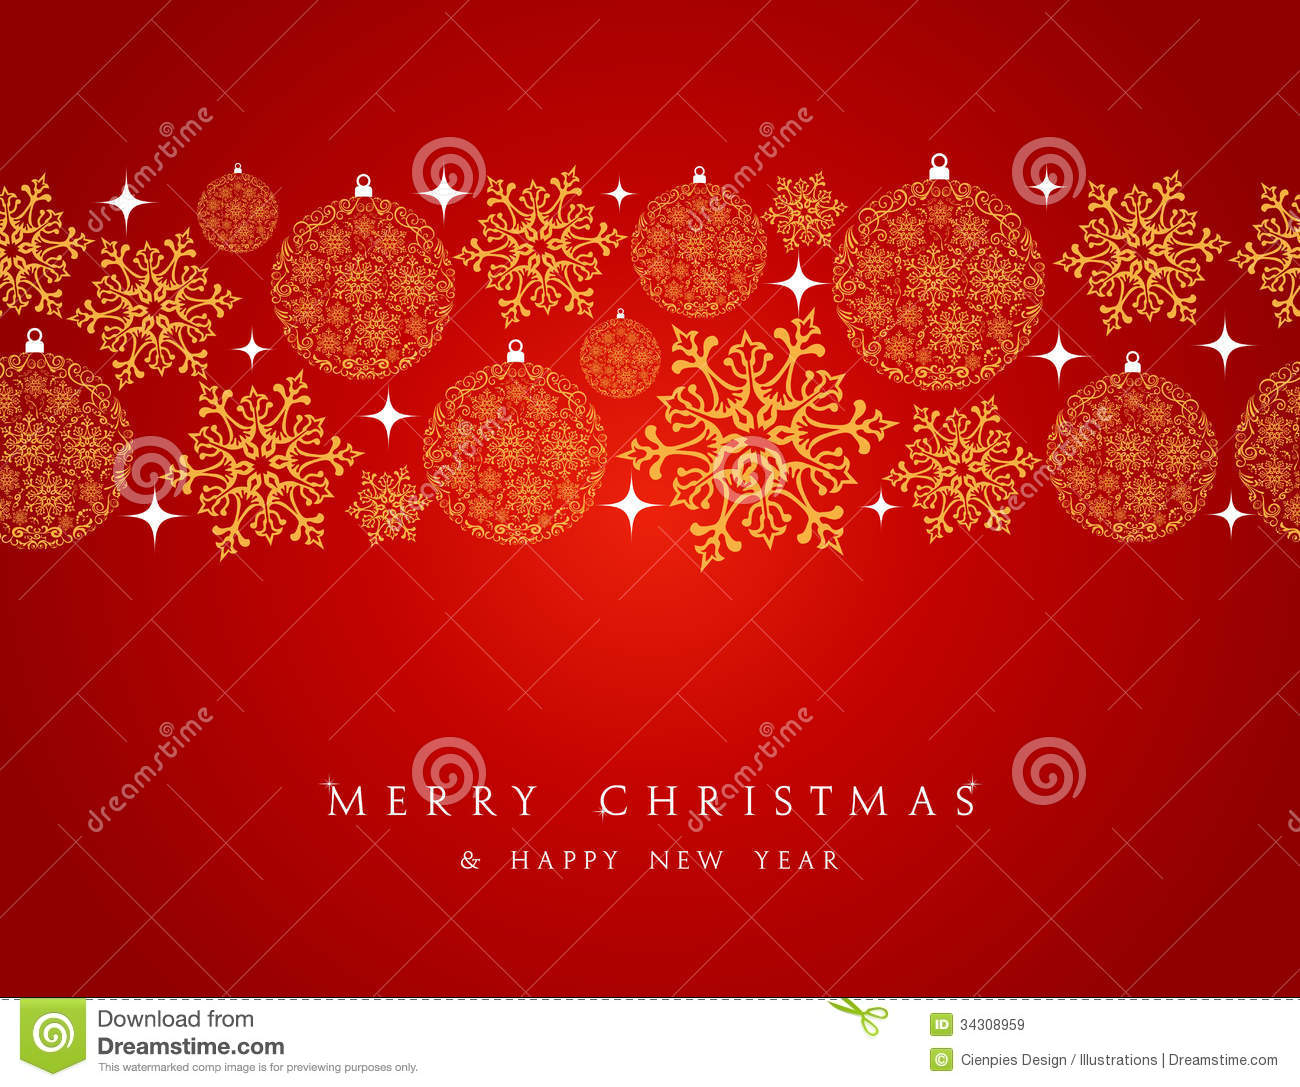 merry christmas decorations elements border. royalty free stock